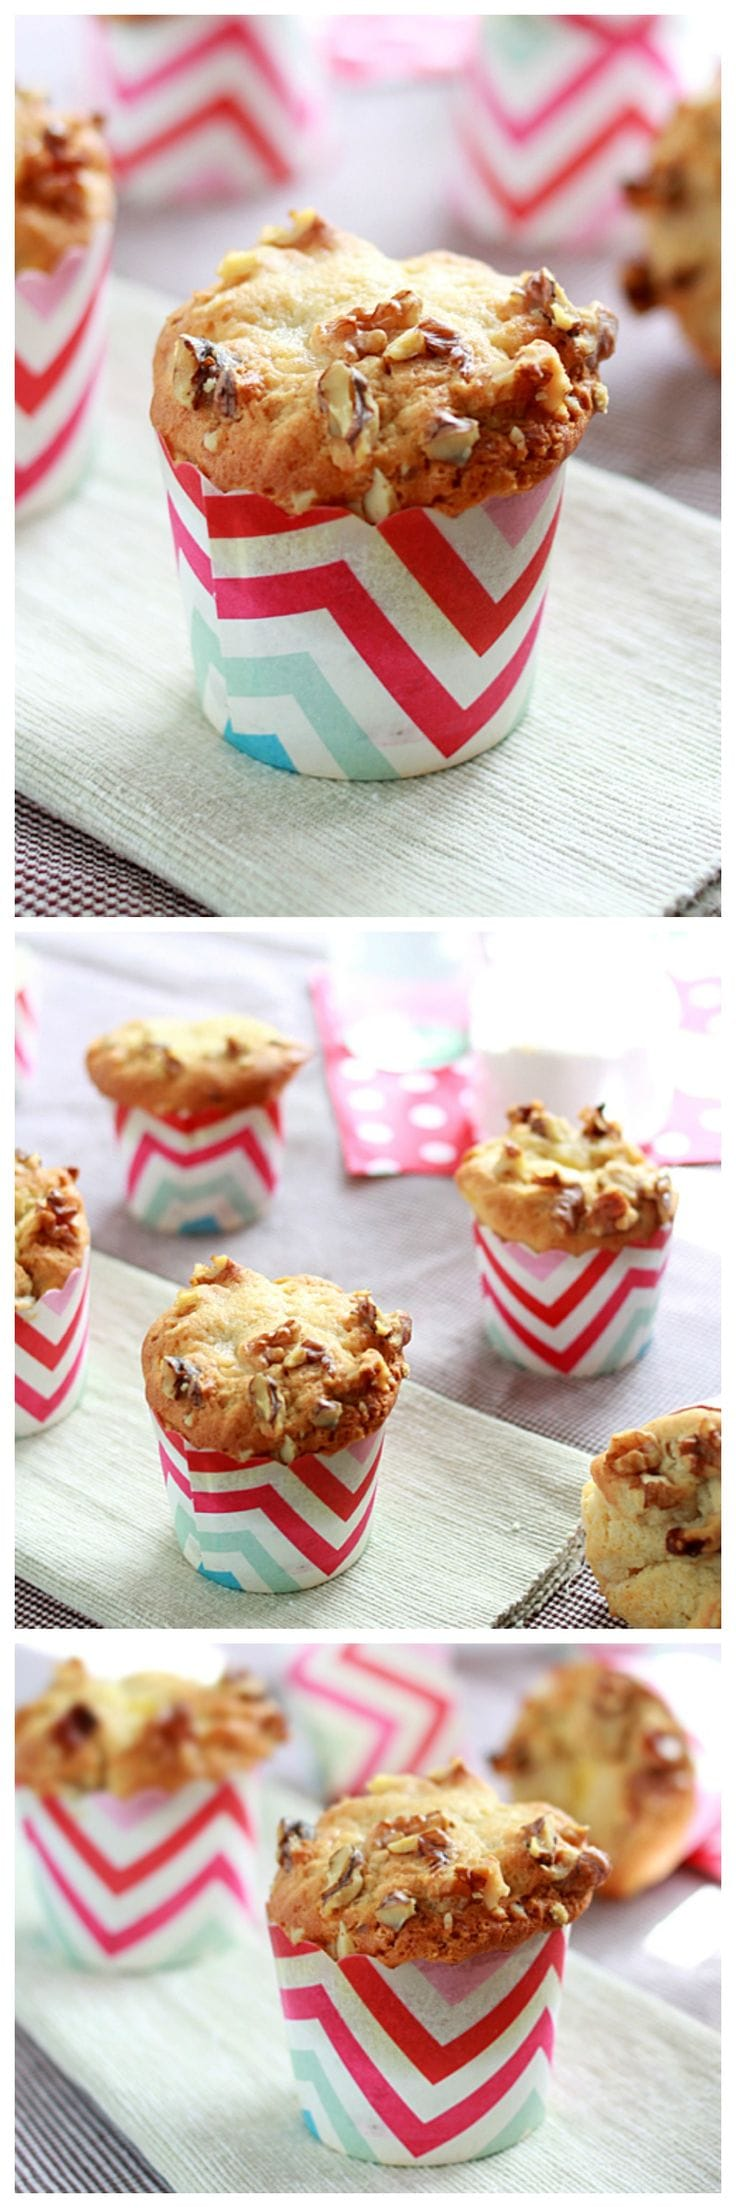 Banana Cream Cheese Muffins – The sweetest and creamiest muffin recipe ever. It's like eating banana muffin and cheesecake together in one bite   rasamalaysia.com